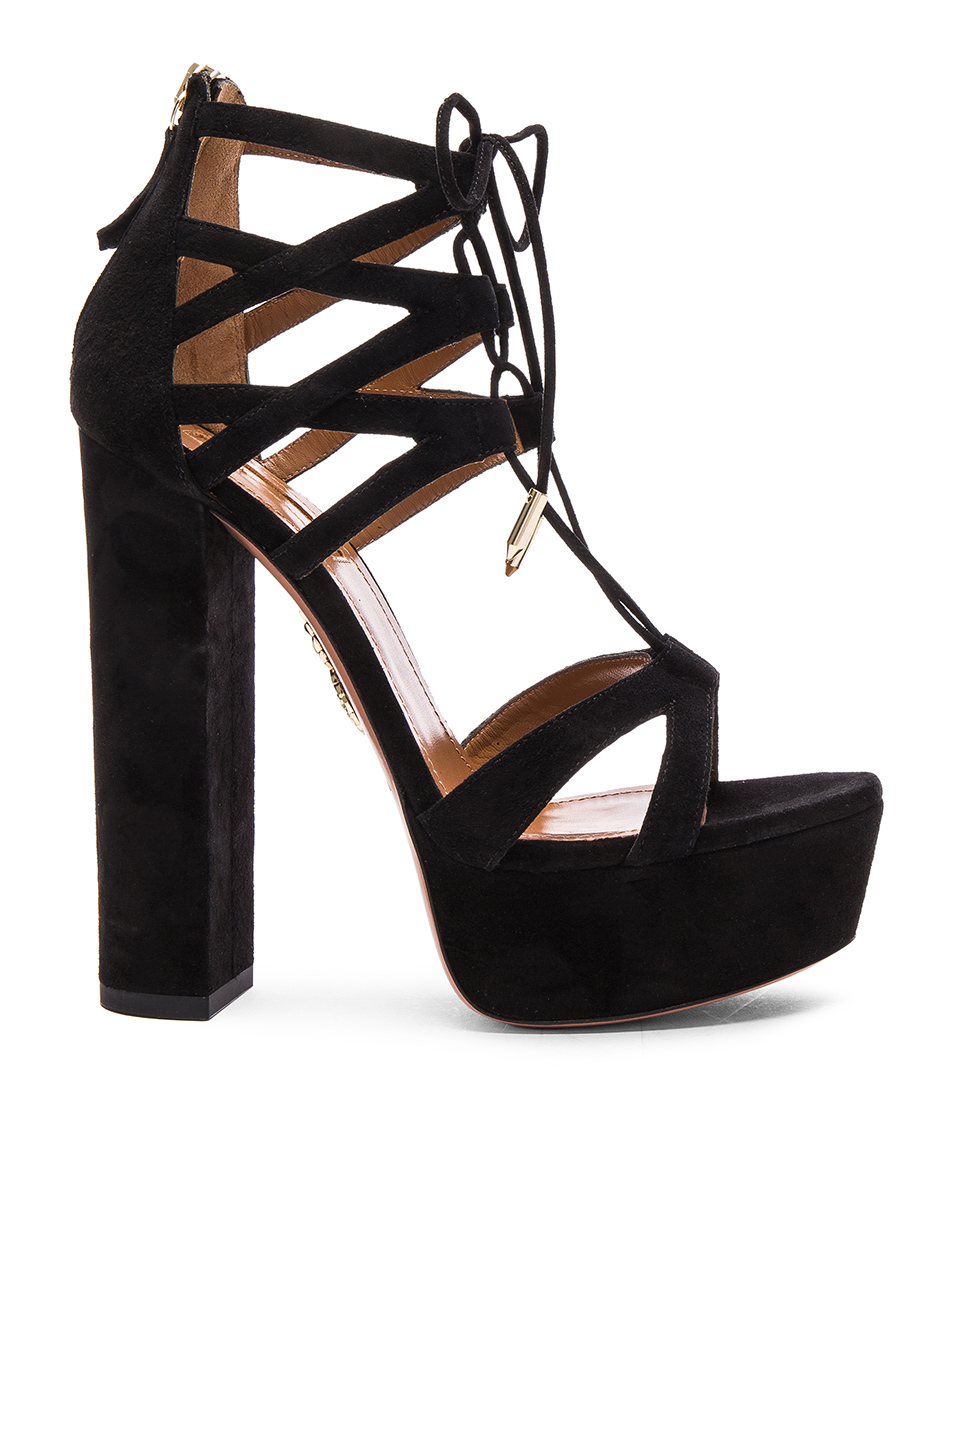 Aquazzura Beverly Hills Plateau Suede Heels in Black